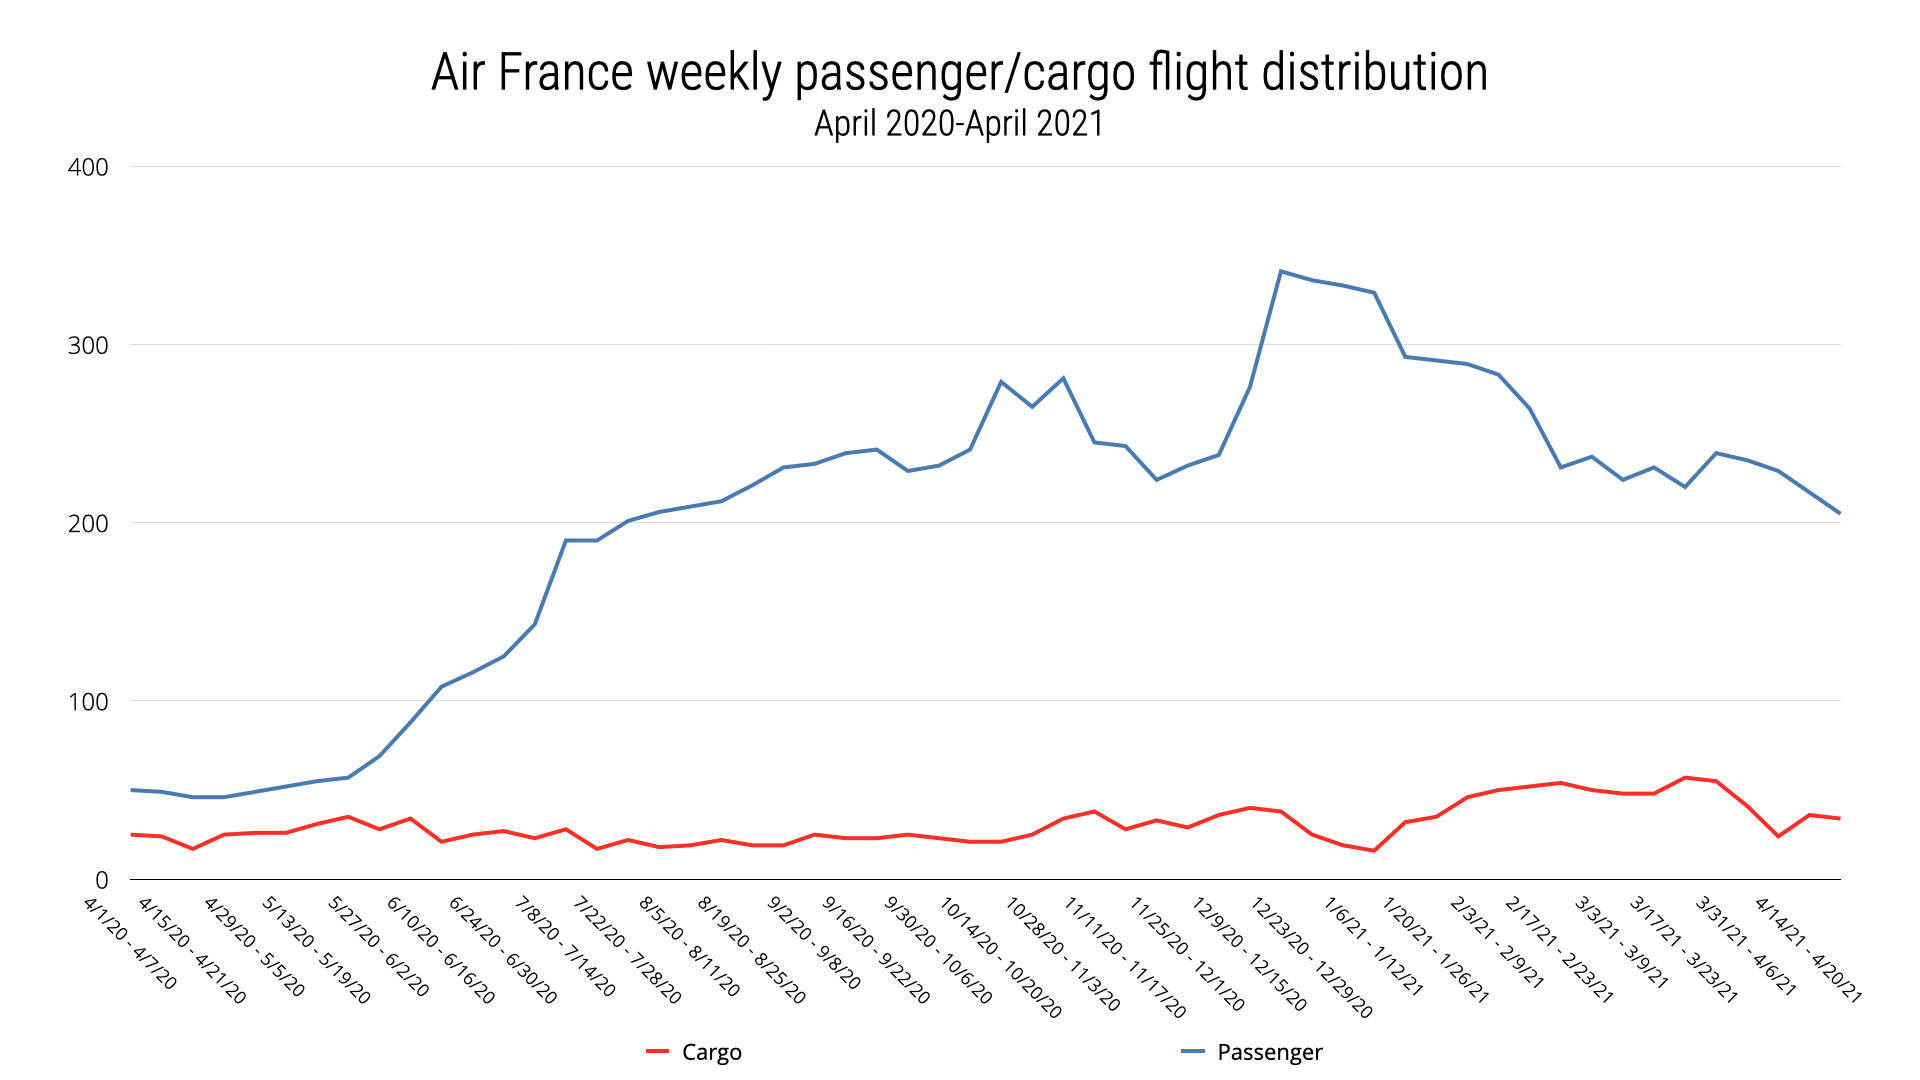 Air France Passenger and Cargo Flights